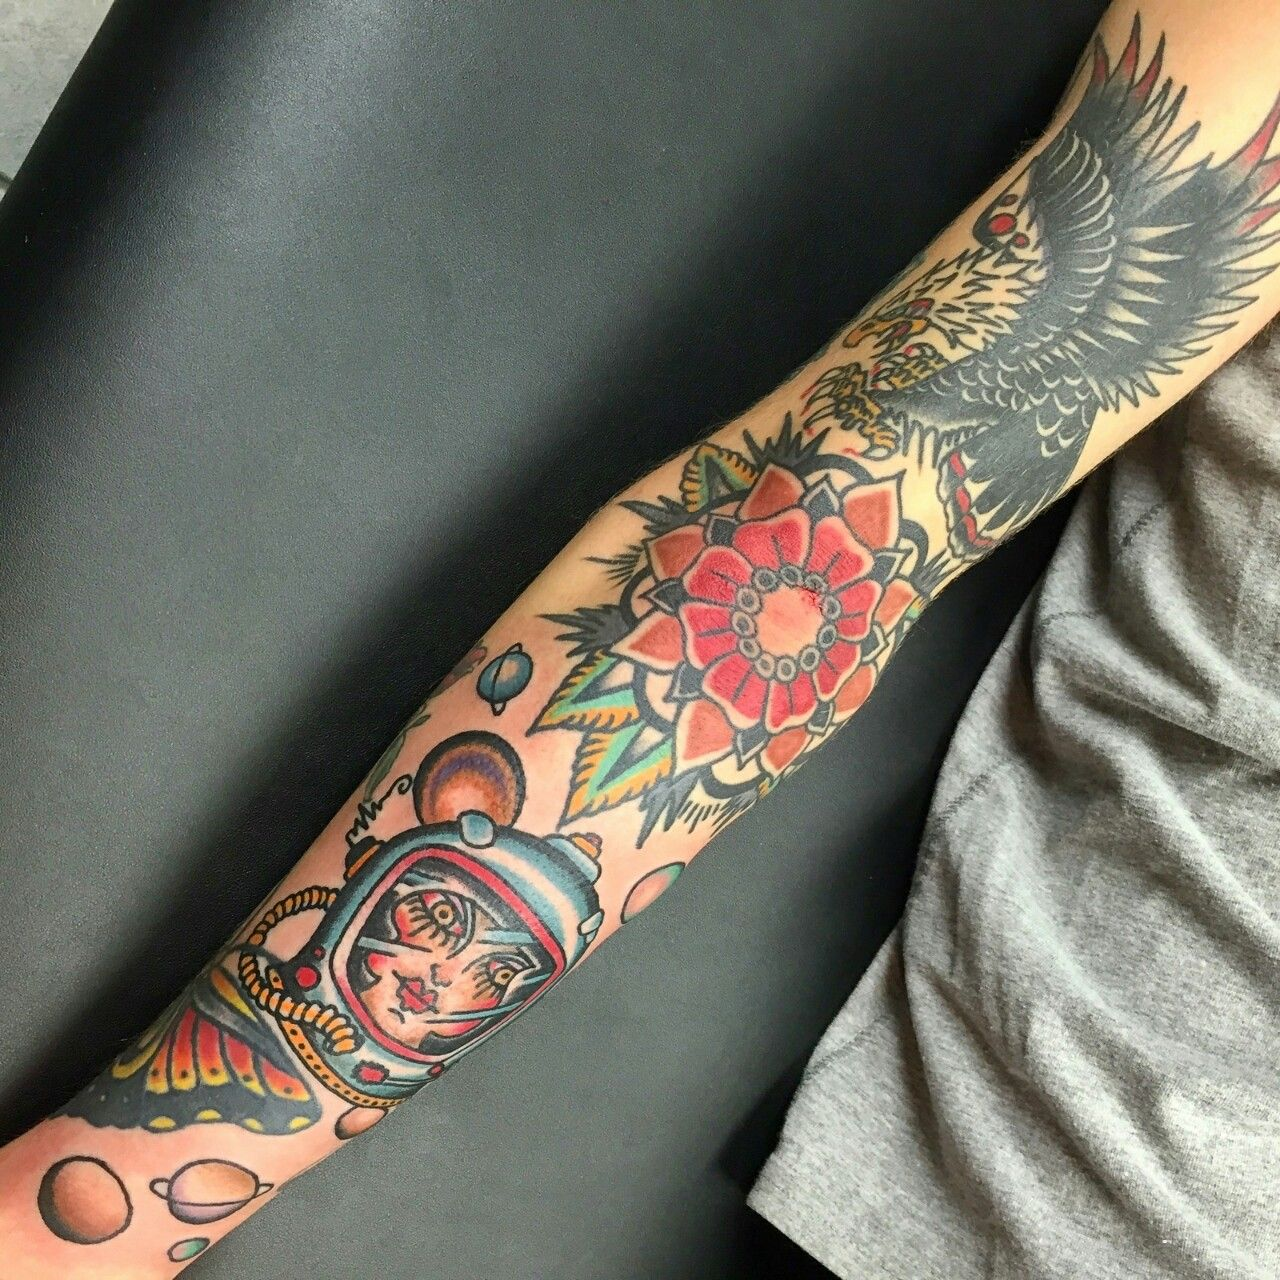 American Traditional Tattoo sleeve by Mark James at